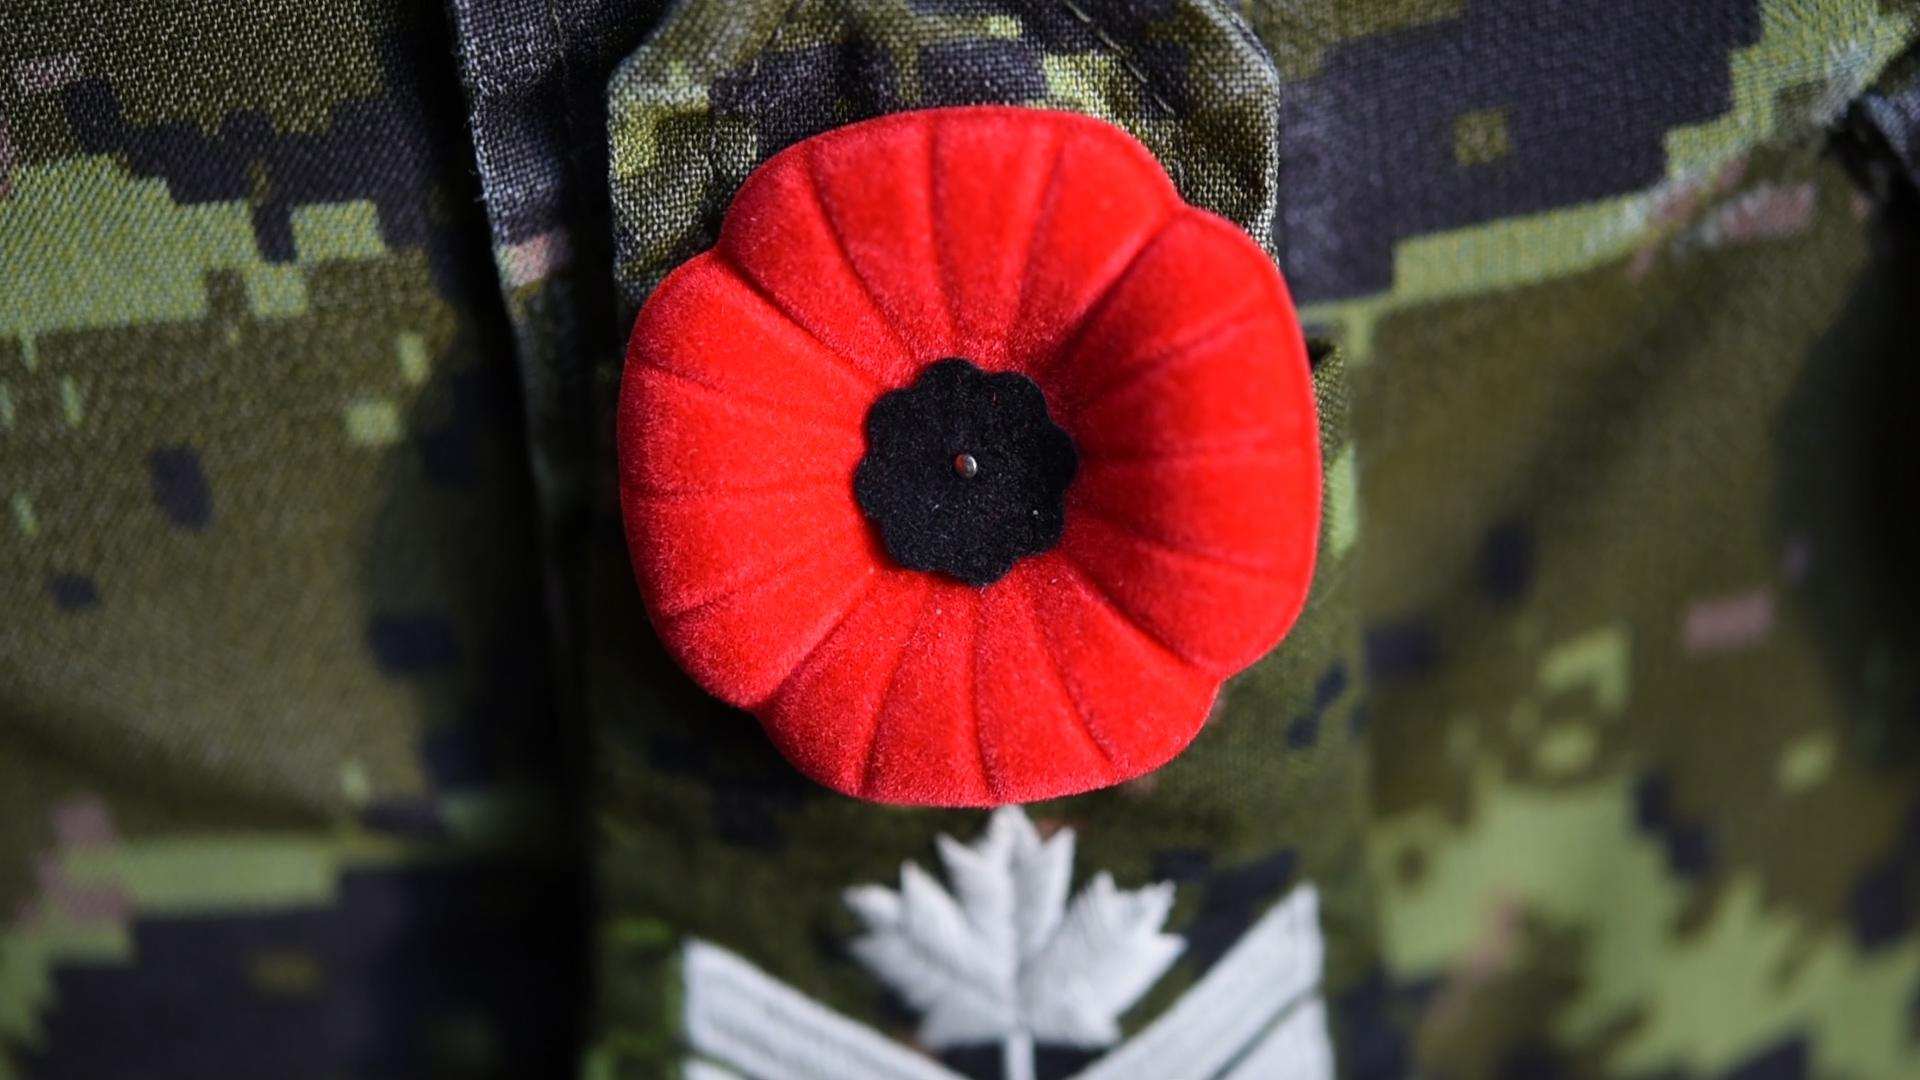 A poppy pinned on a Canadian Army uniform